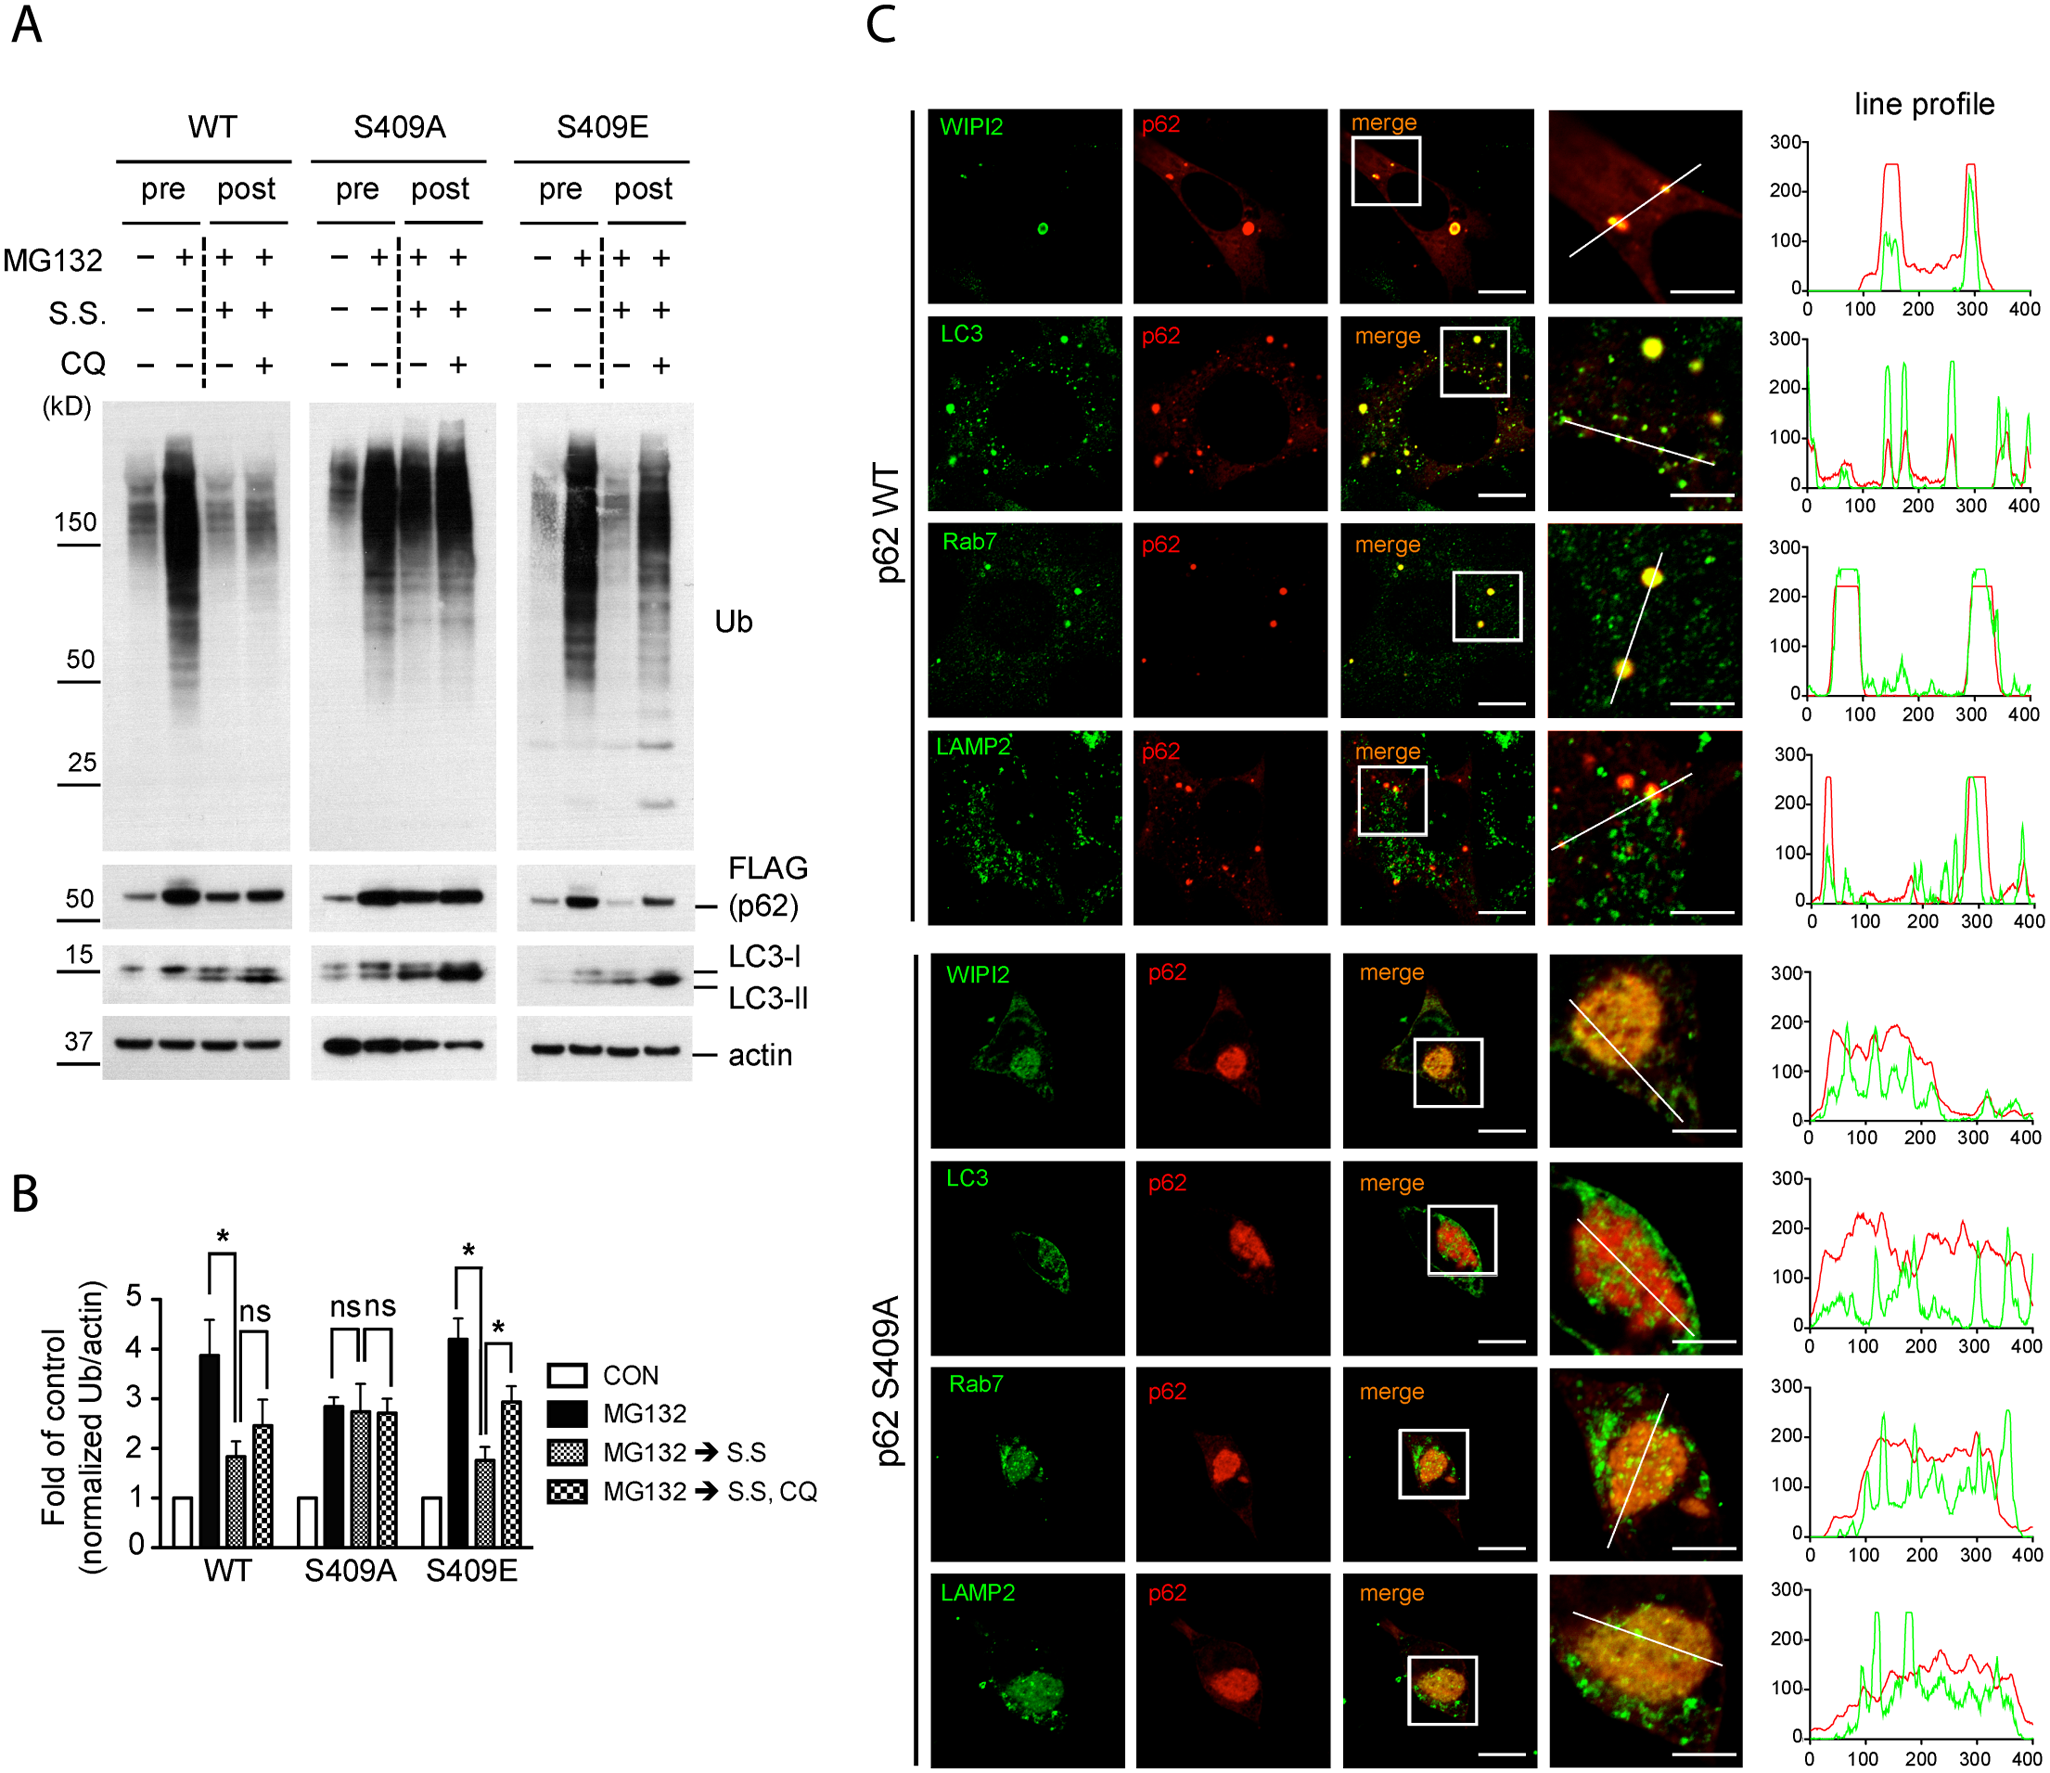 Phosphorylation of p62 at S409 is required for autophagic degradation of polyubiquitinated proteins and the recruitment of autophagy proteins.